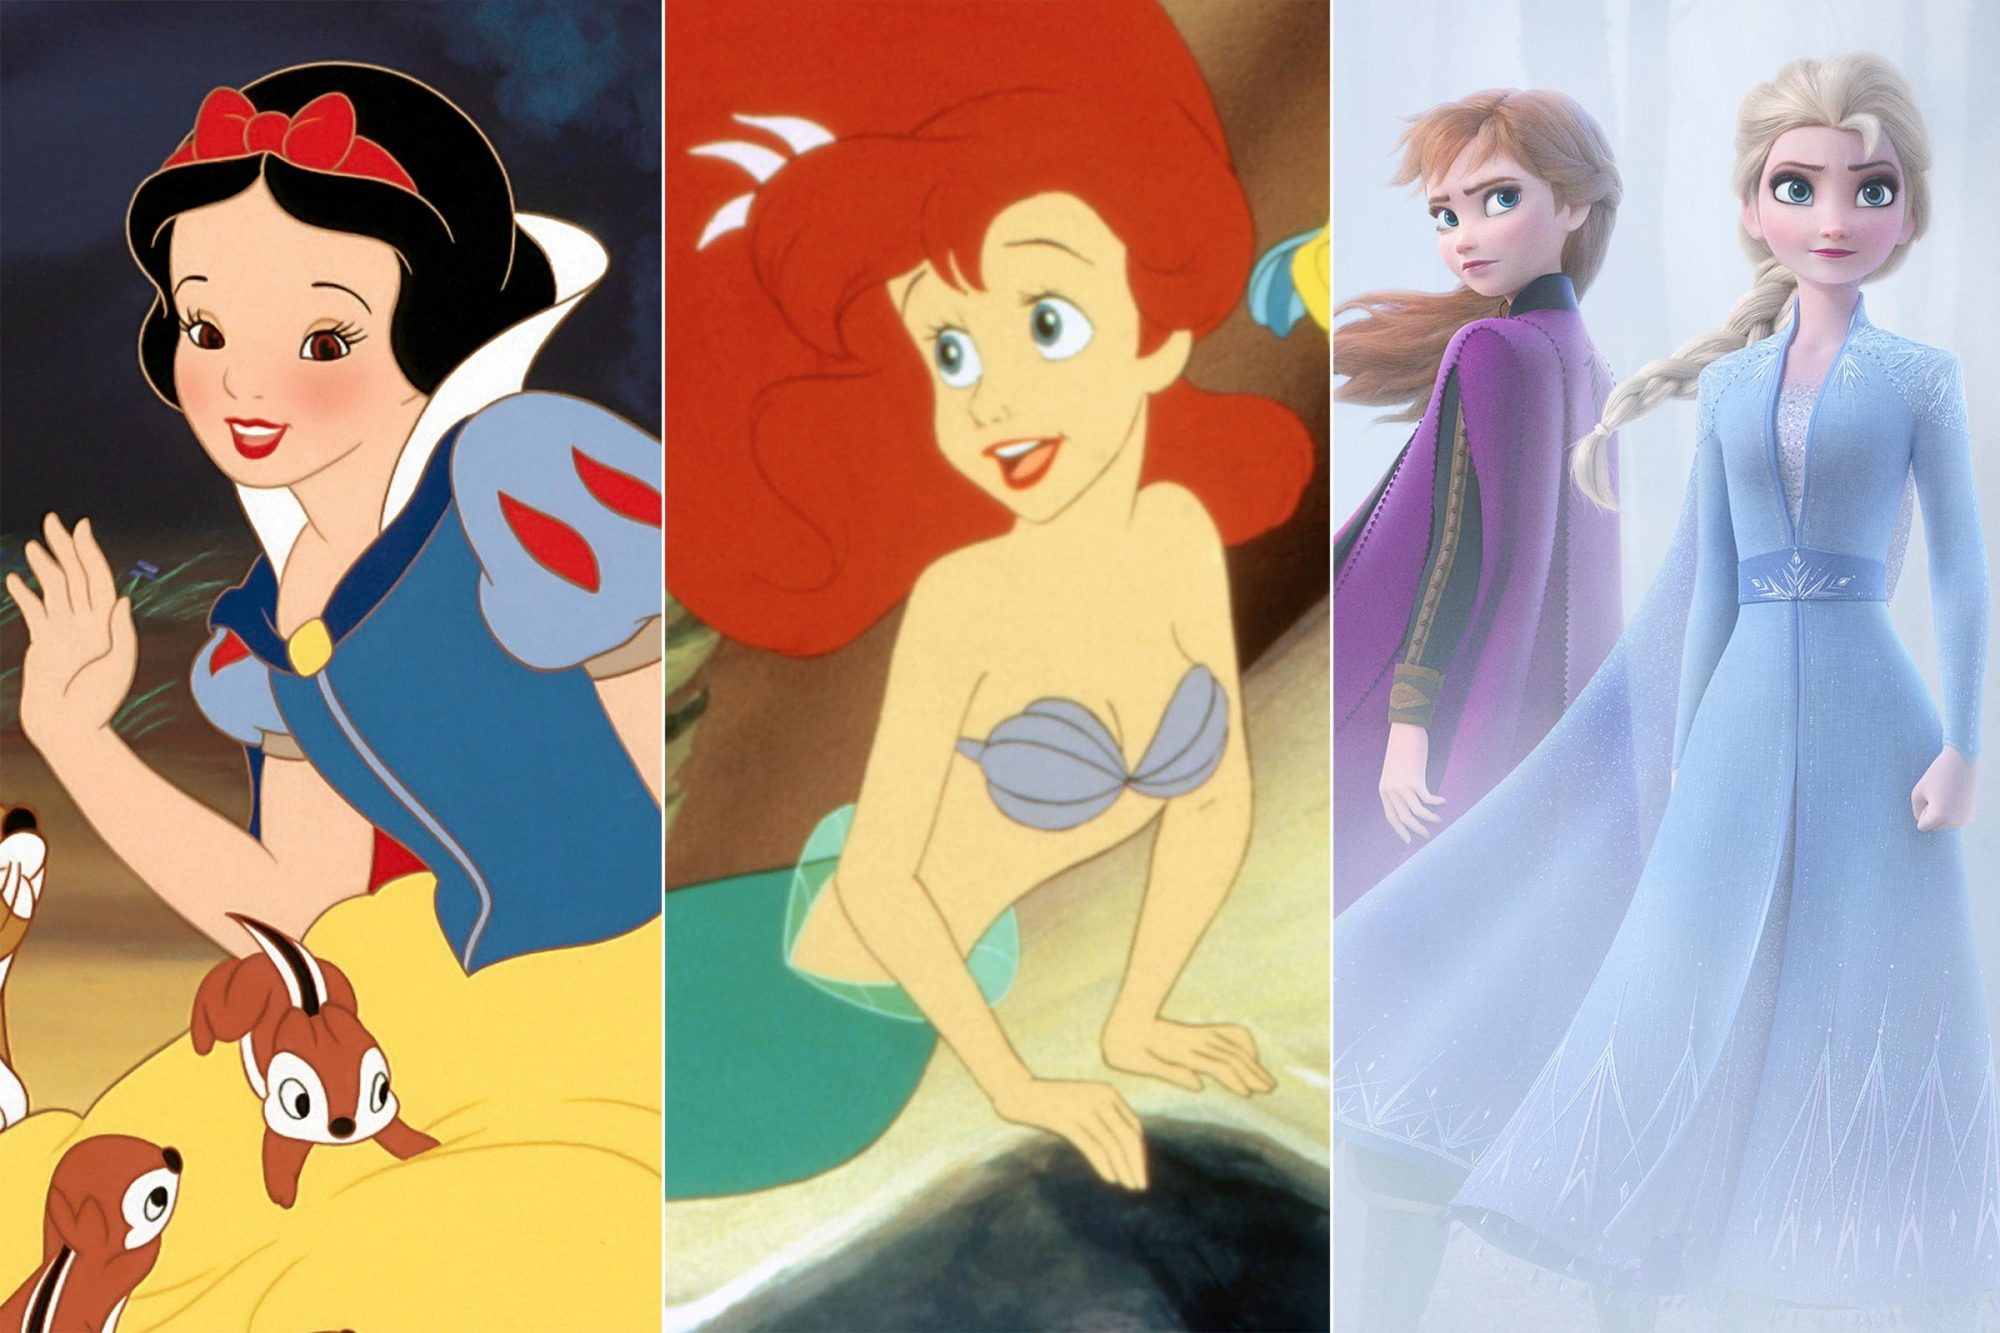 From Snow White to Frozen 2: The evolution of Disney Princesses | EW.com